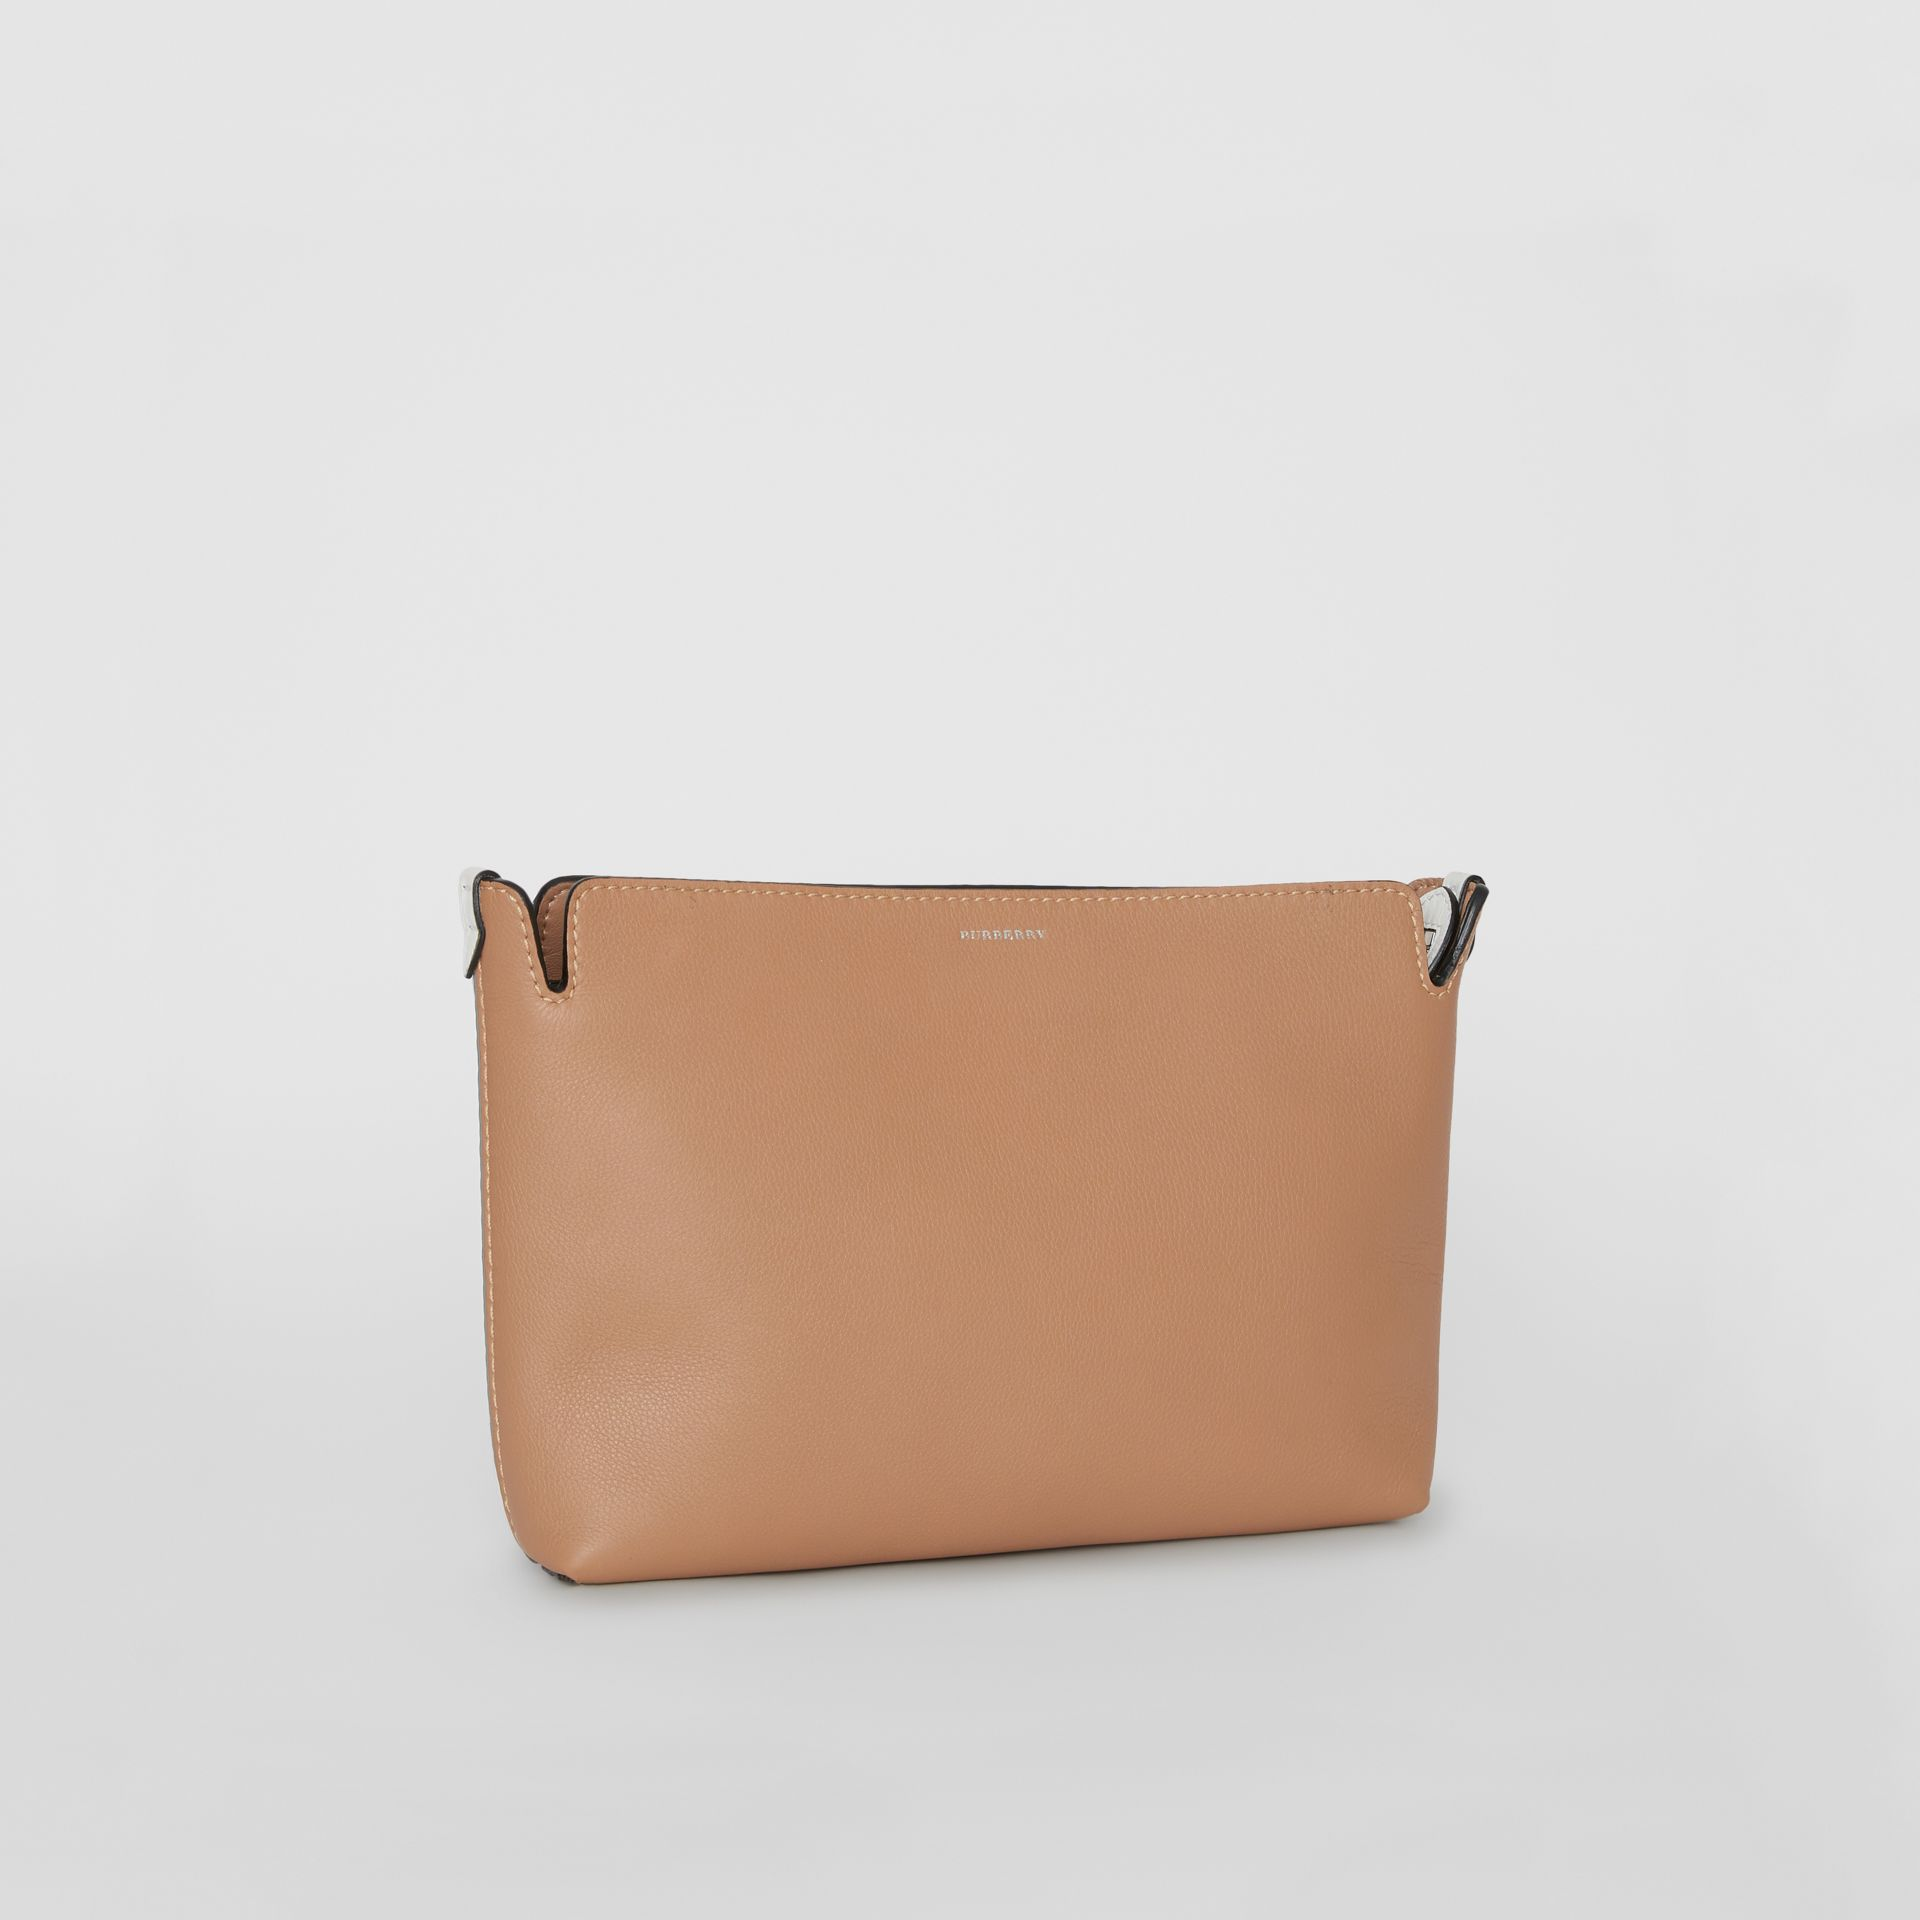 Medium Two-tone Leather Clutch in Light Camel/chalk White - Women | Burberry United States - gallery image 6